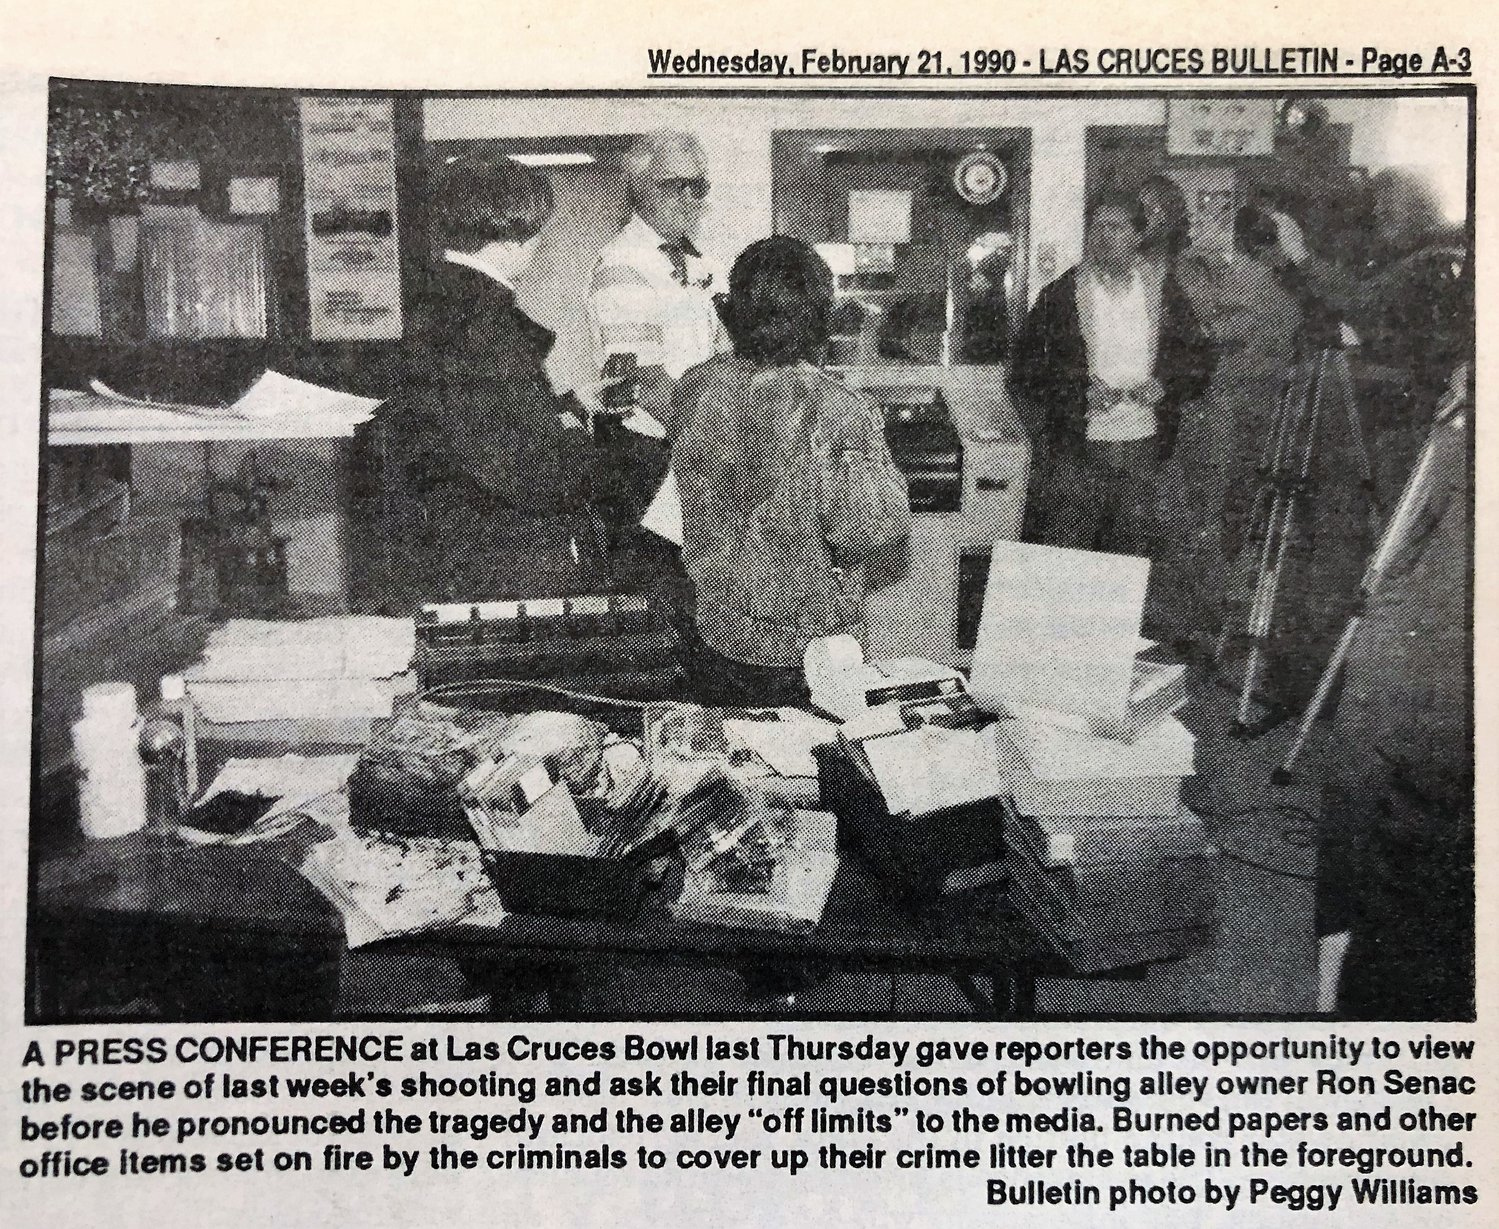 Las Cruces Bulletin Reporter Peggy Williams was on the scene during a press conference in 1990 following the bowling alley murders.